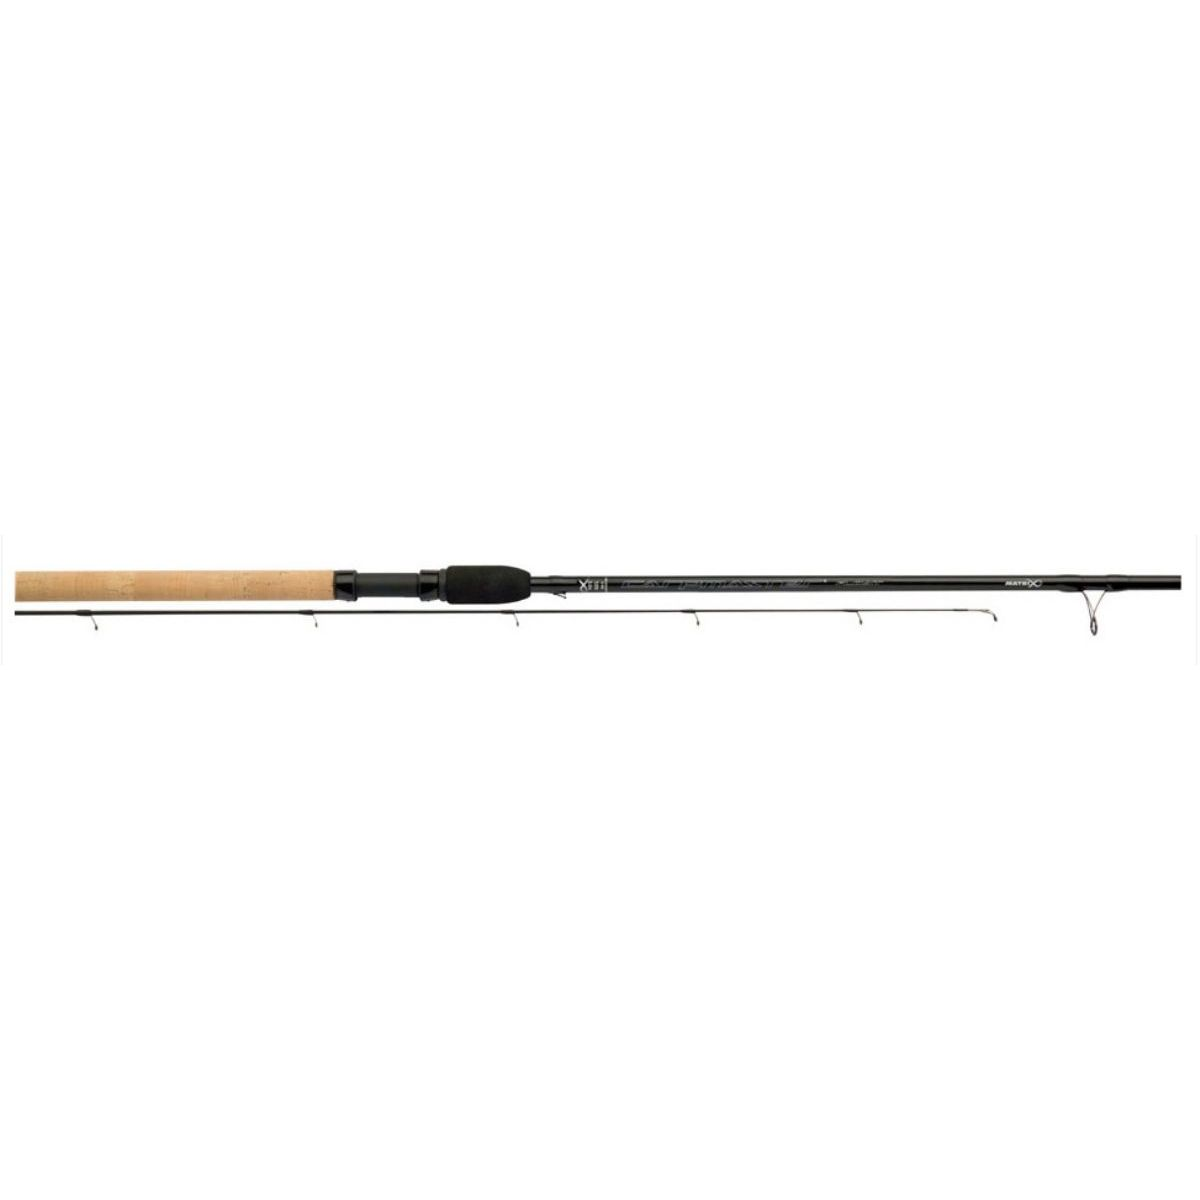 GRD004 Matrix Carpmaster Float 12ft